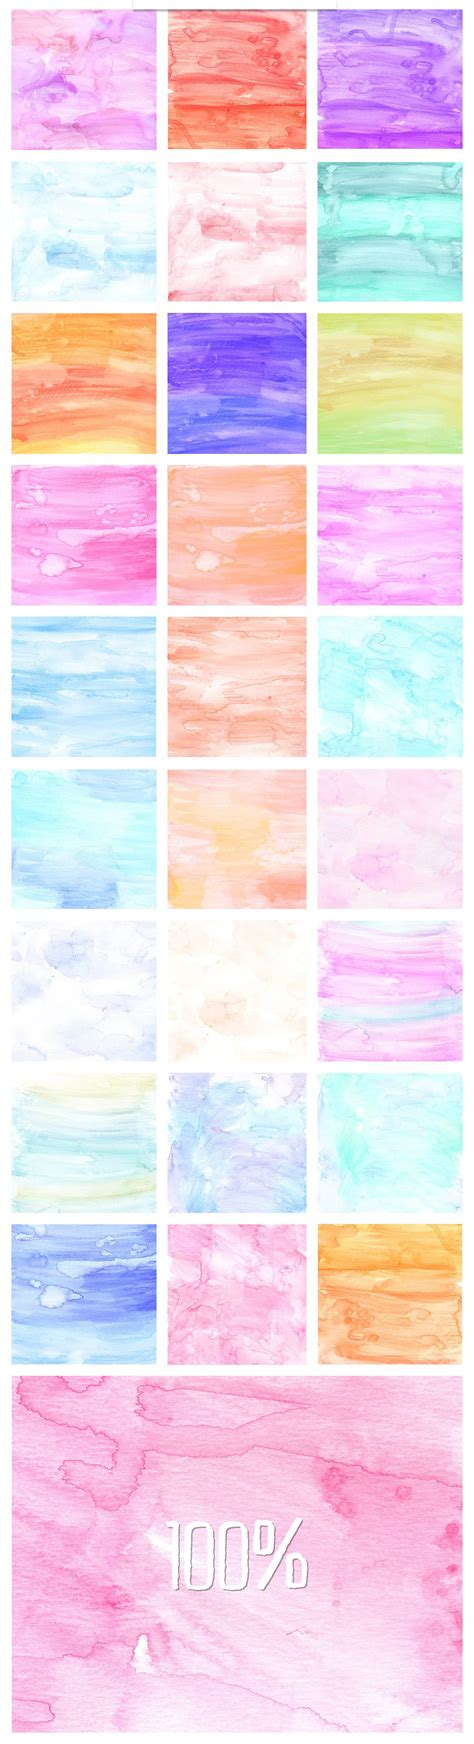 Handmade Watercolor Paper - a versatile collection of 33 free handmade digital